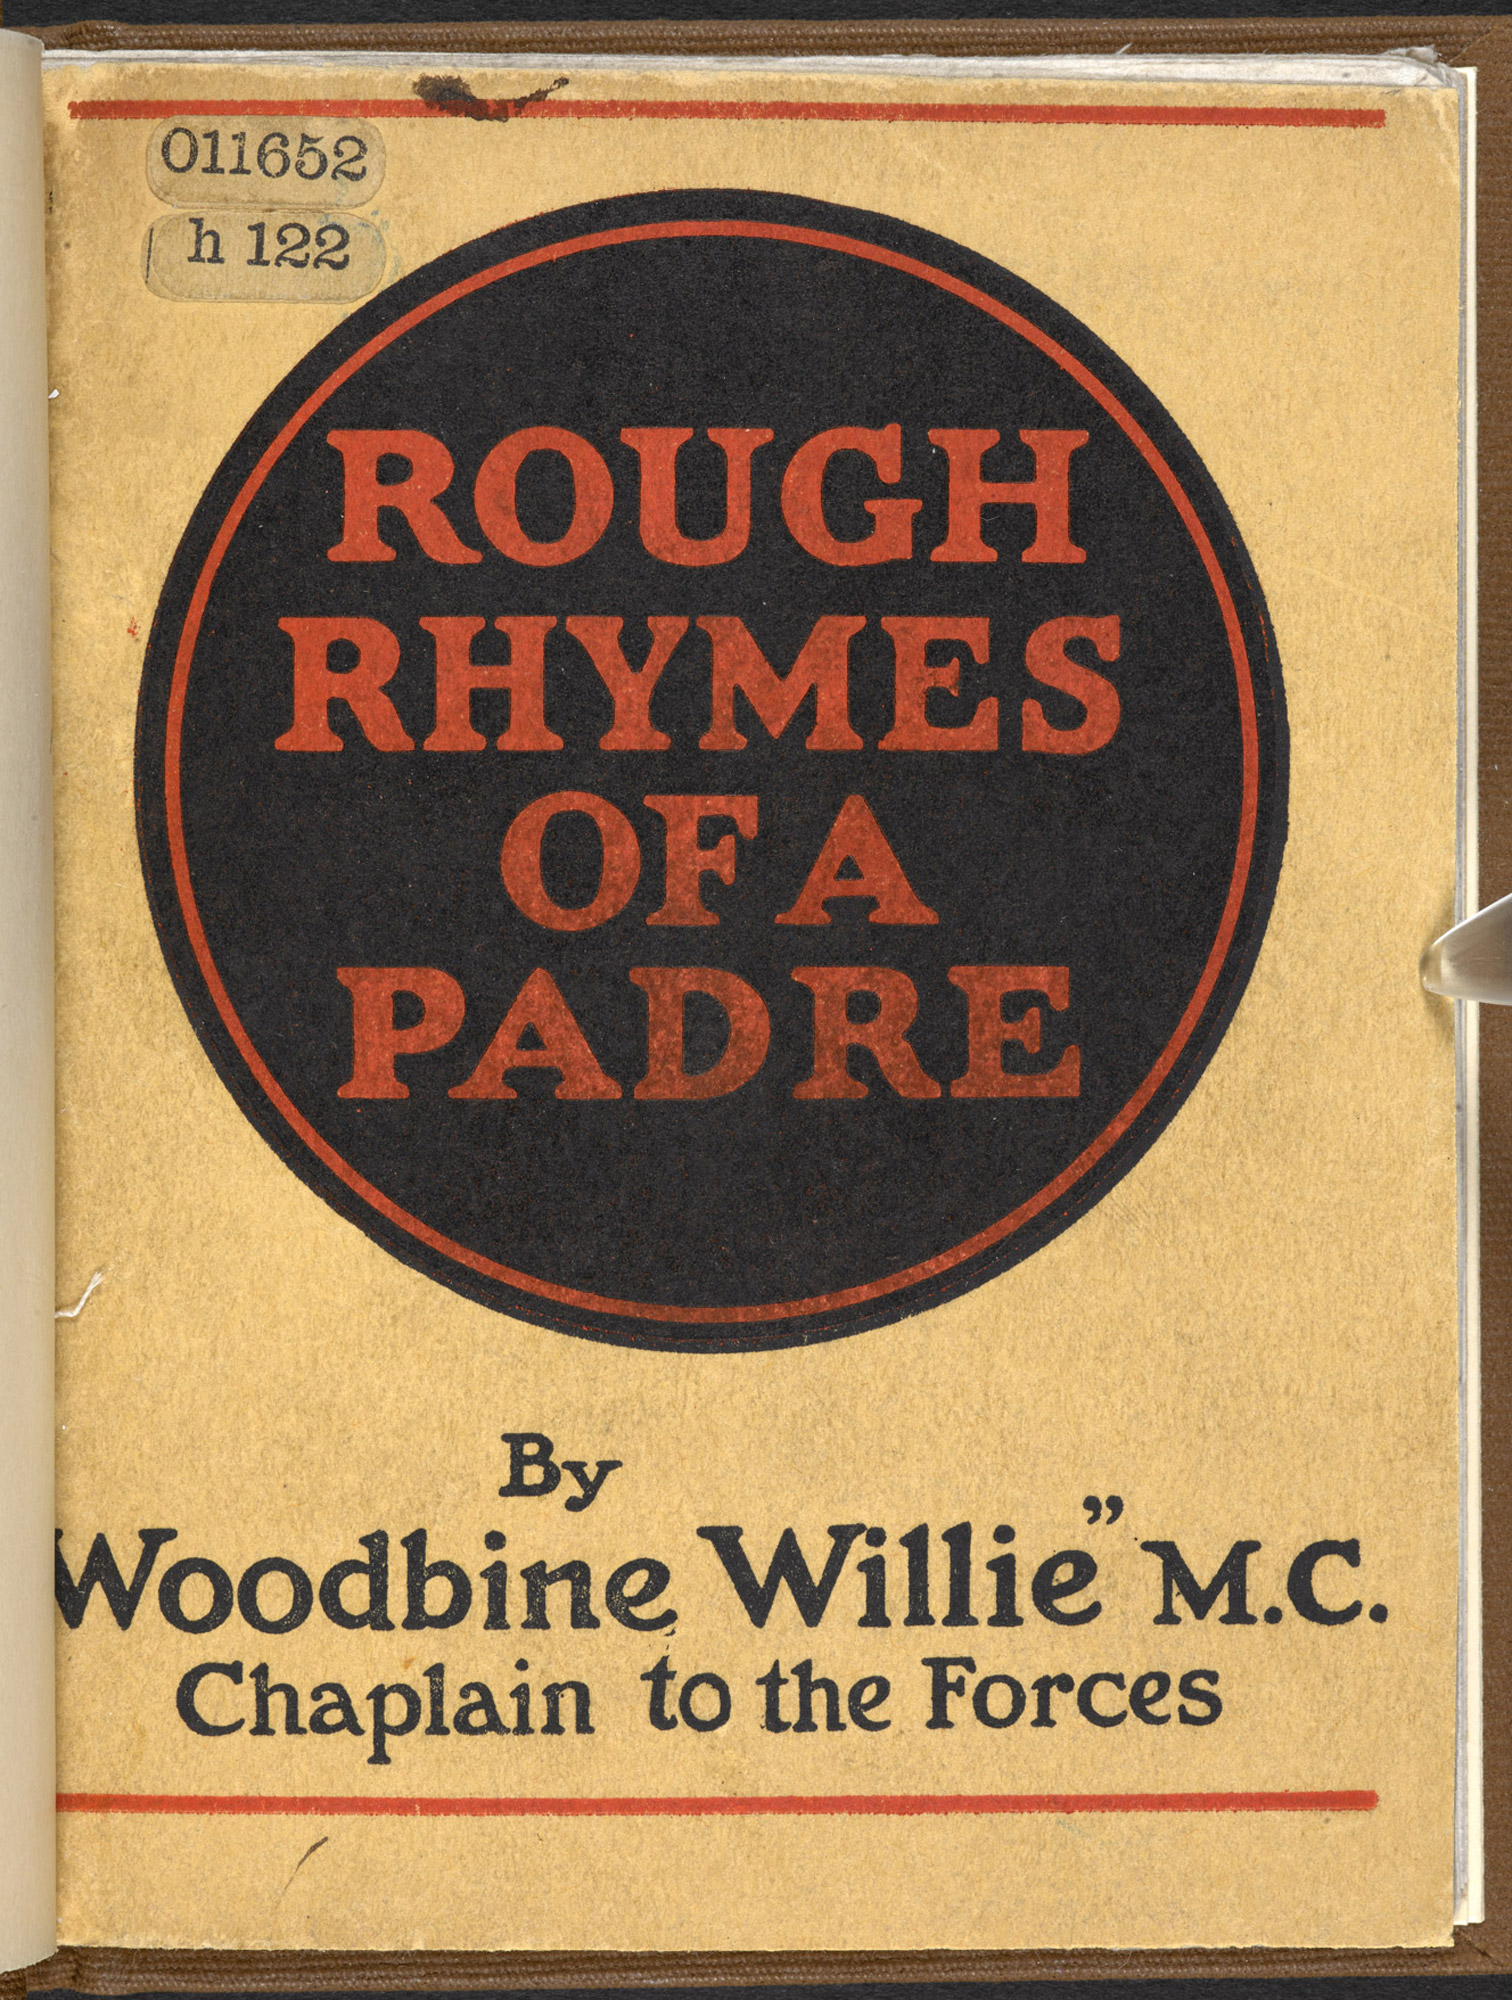 Rough Rhymes of a Padre, by 'Woodbine Willie'